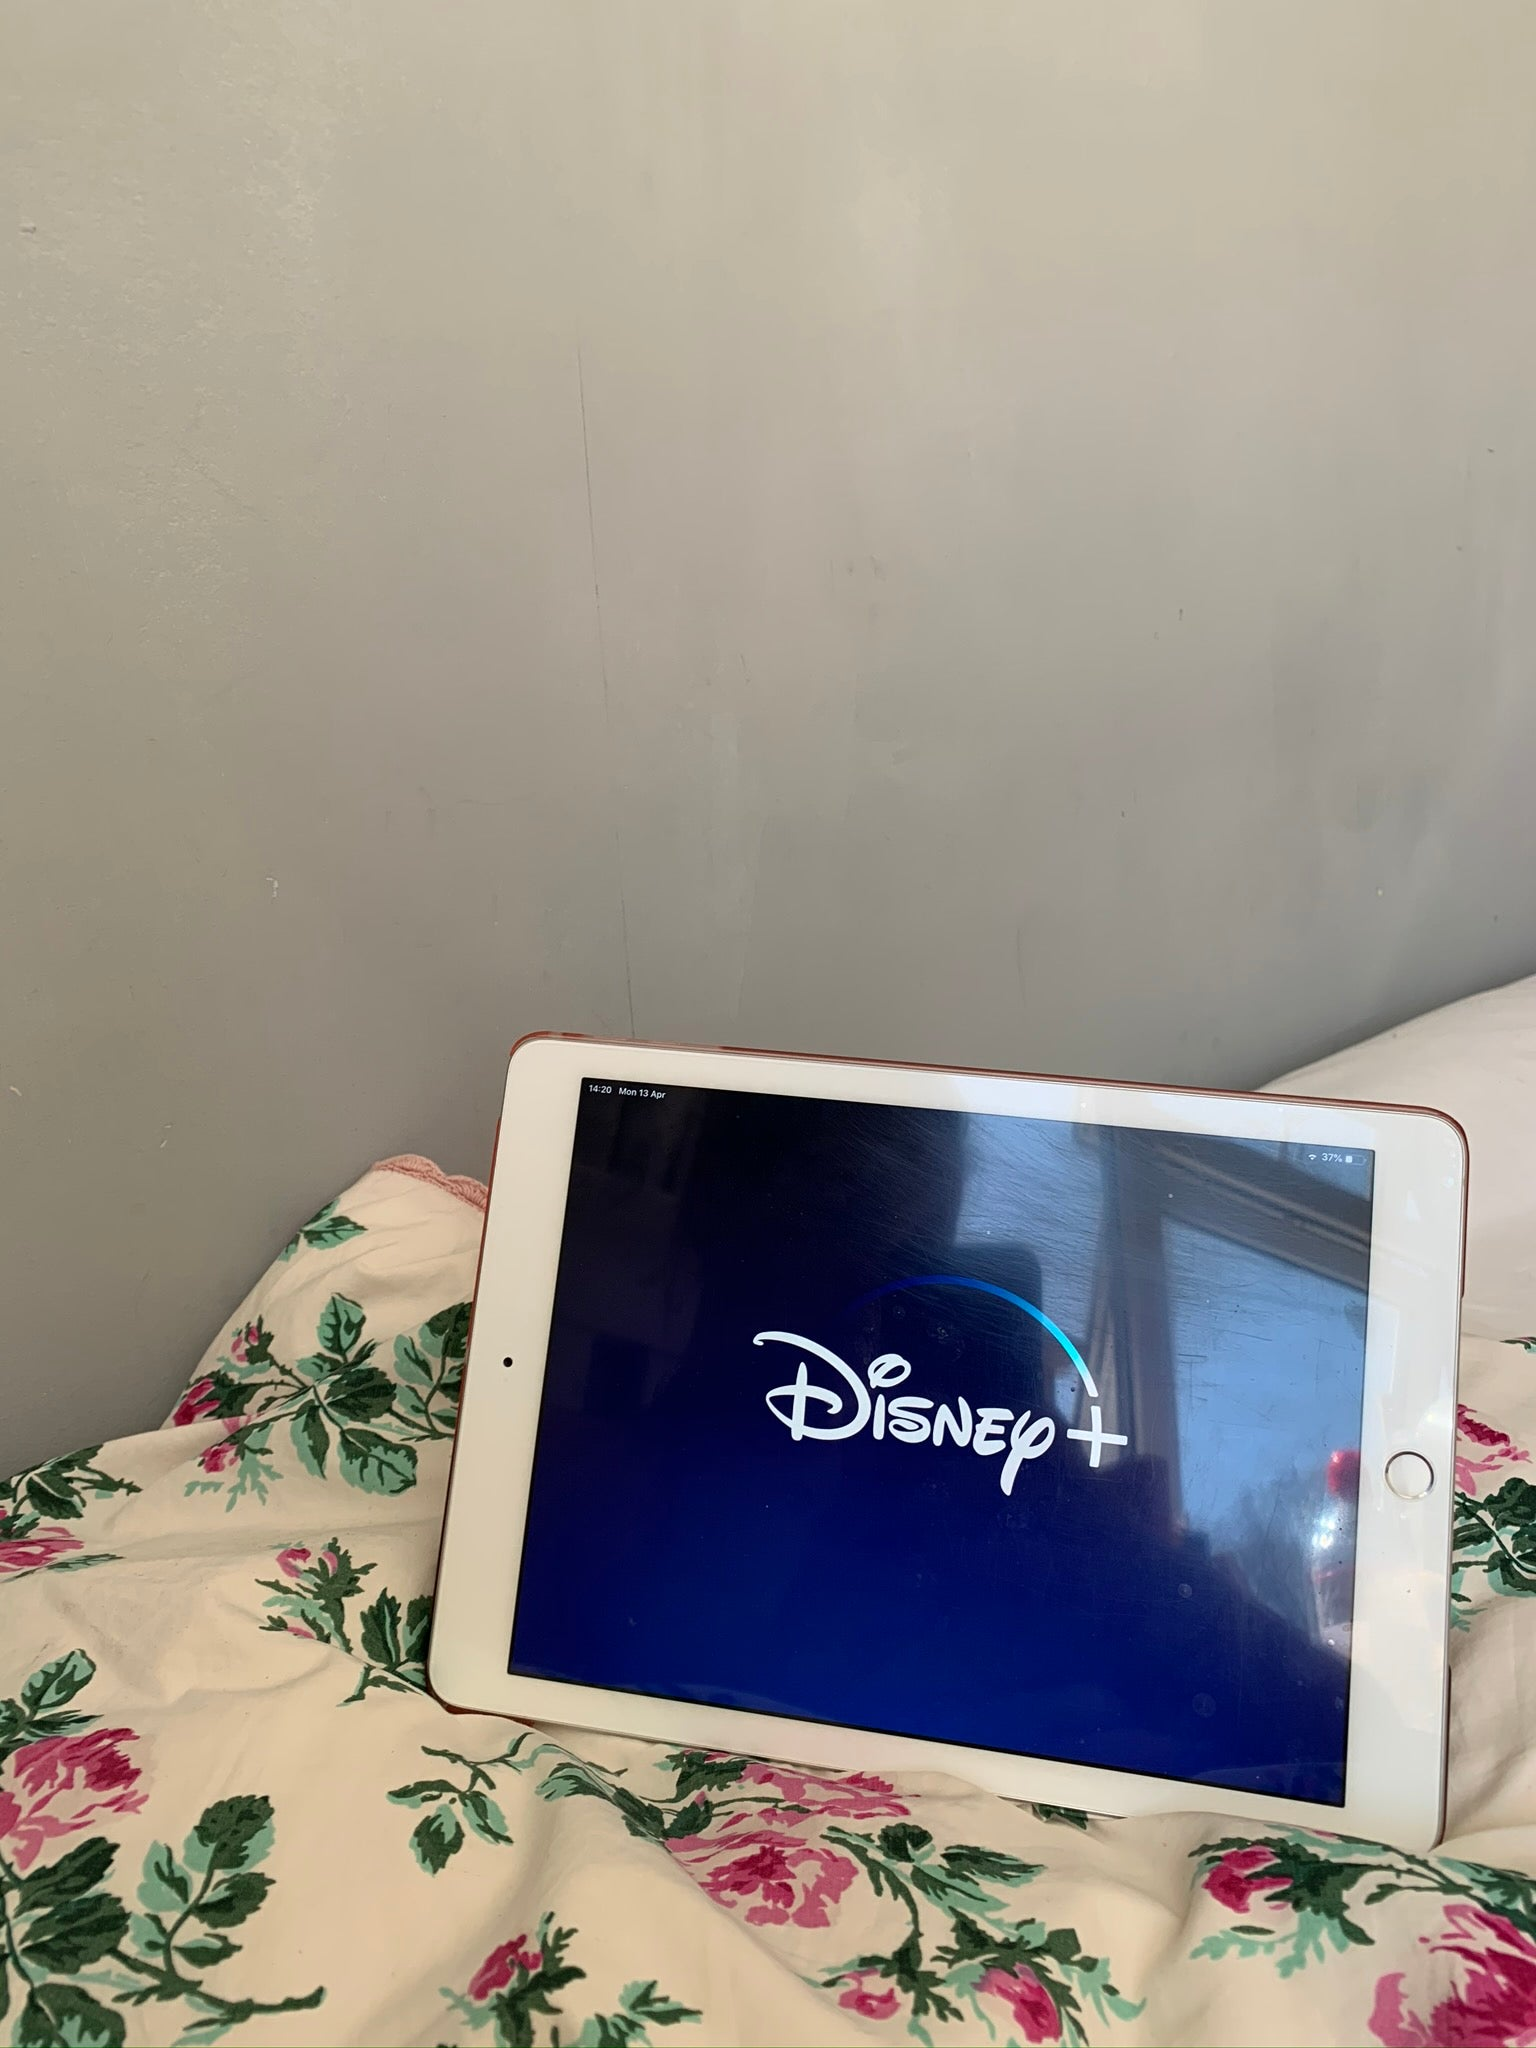 Disney + on an ipad in bed